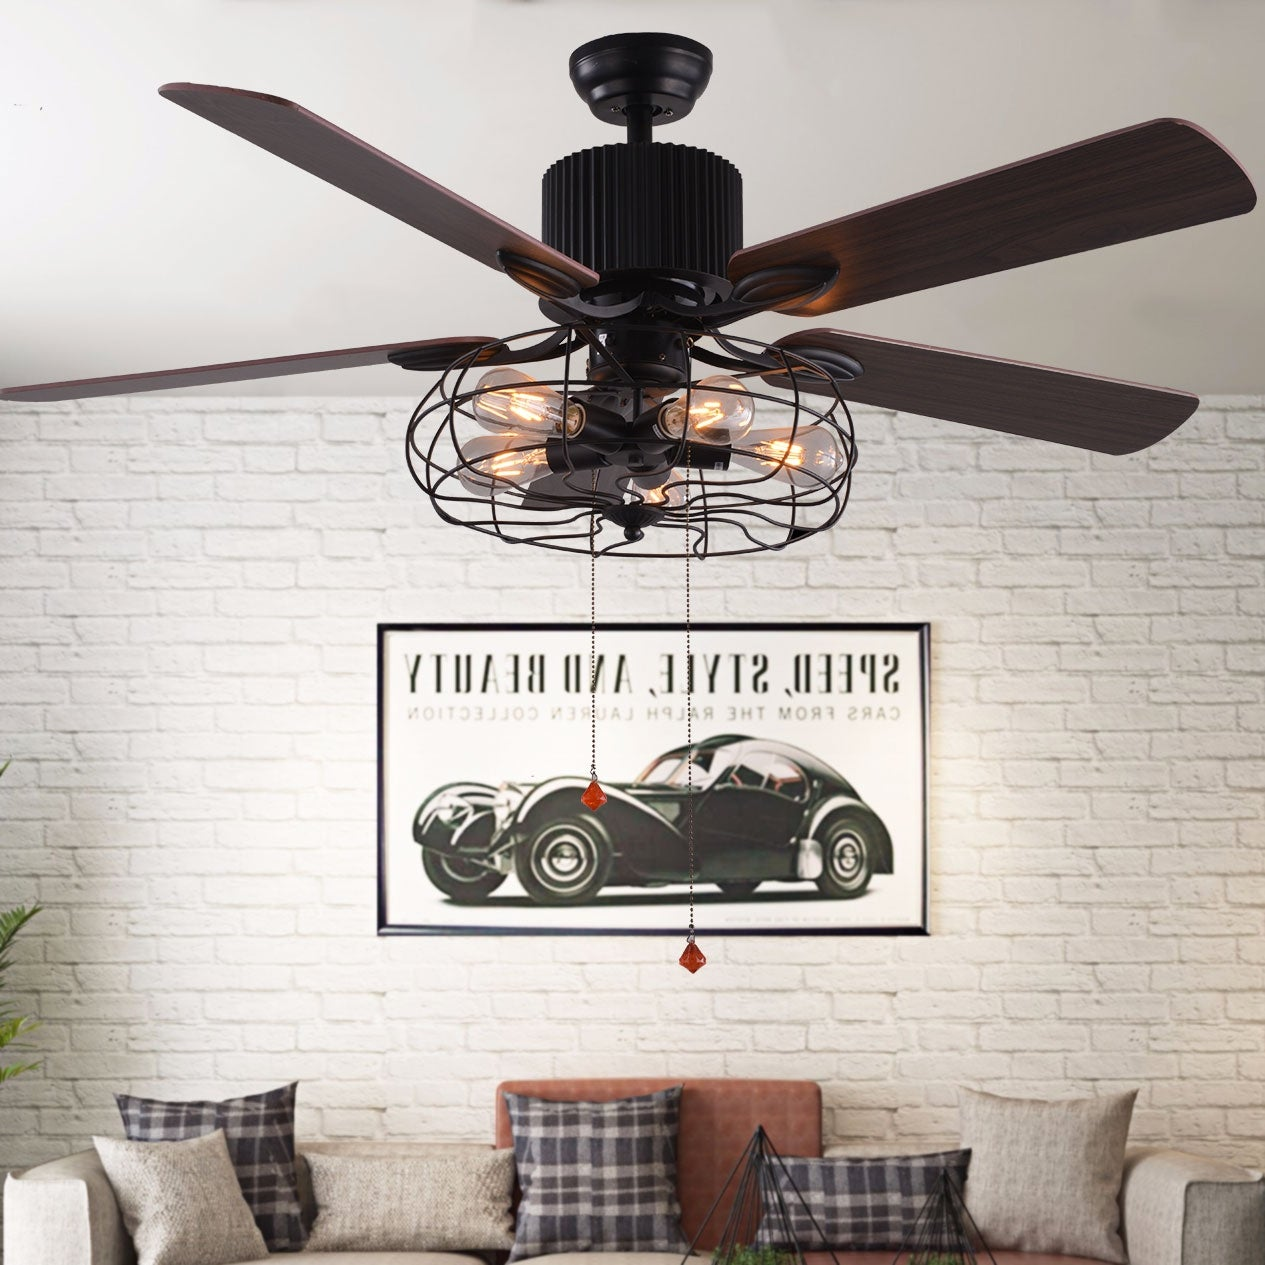 Shop Black Industrial Ceiling Fan With Remote Control On Sale Overstock 28174117